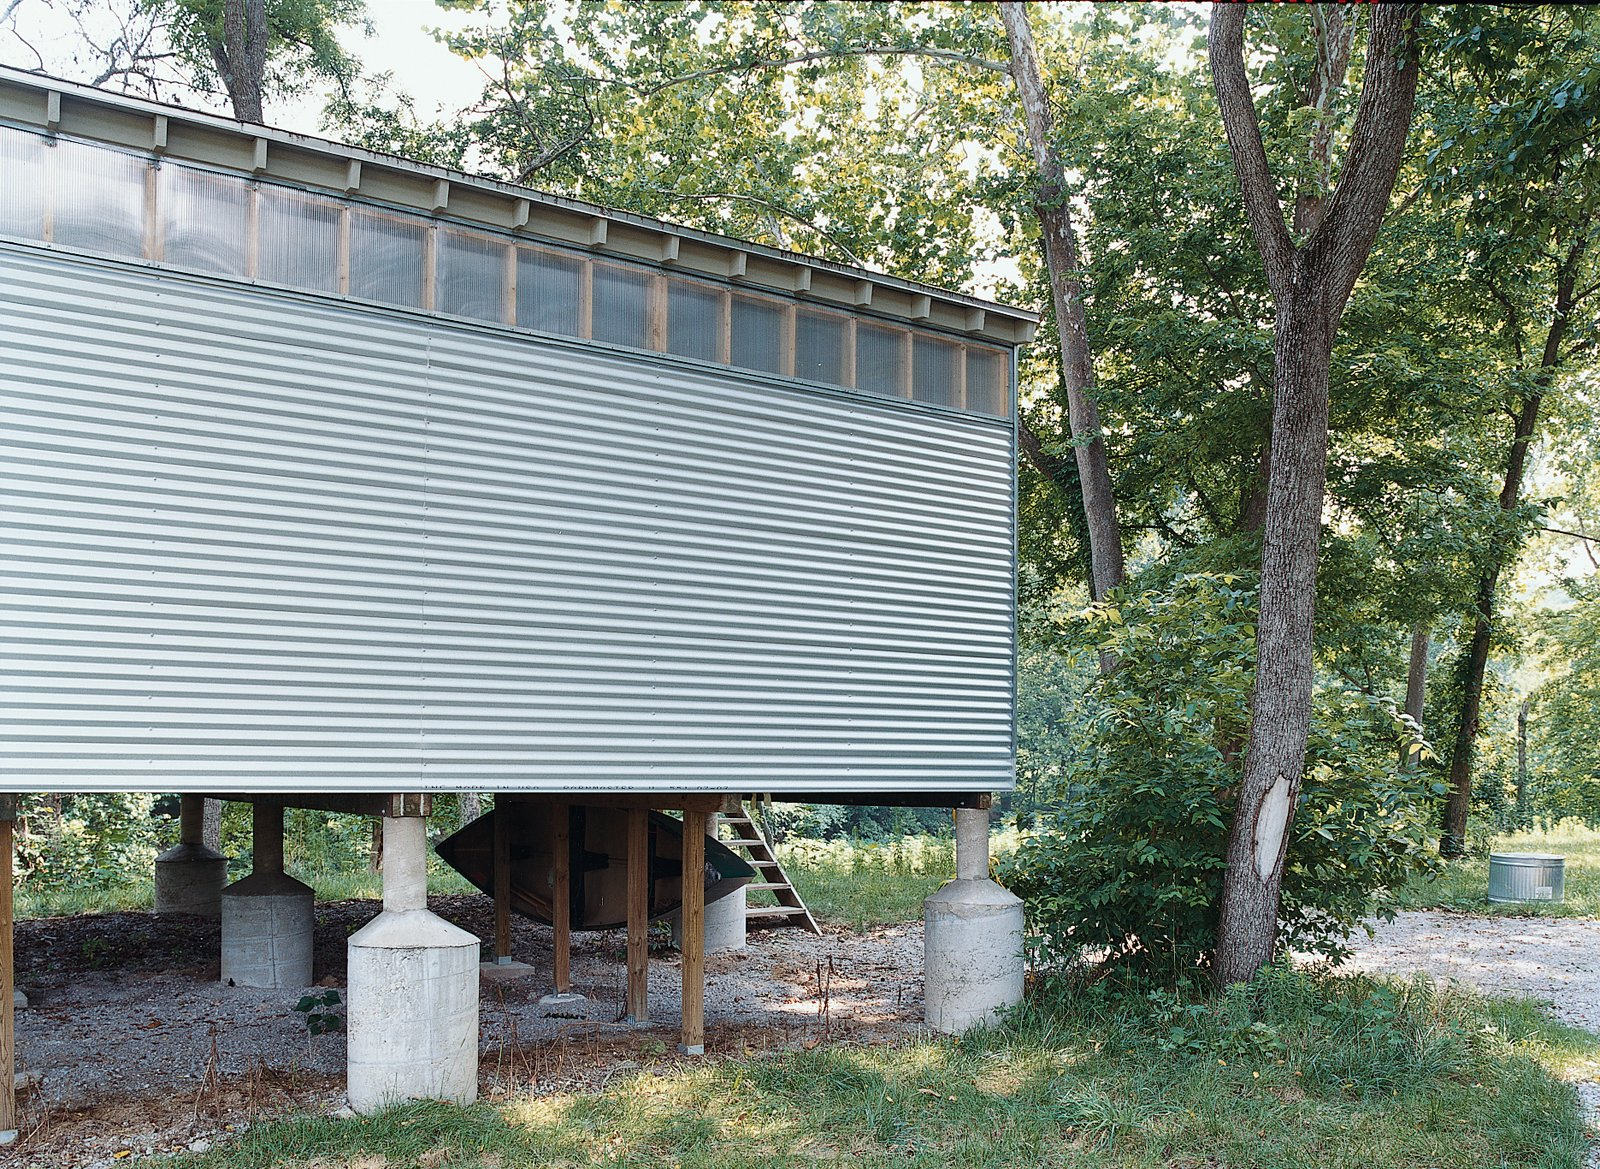 Exterior, Metal Siding Material, House Building Type, and Cabin Building Type The creekside Fish Camp prototype rests on oversize flood-rated pylons, one of many foundation options the Camp units can accommodate.  Photo 10 of 10 in All You Need Is LV